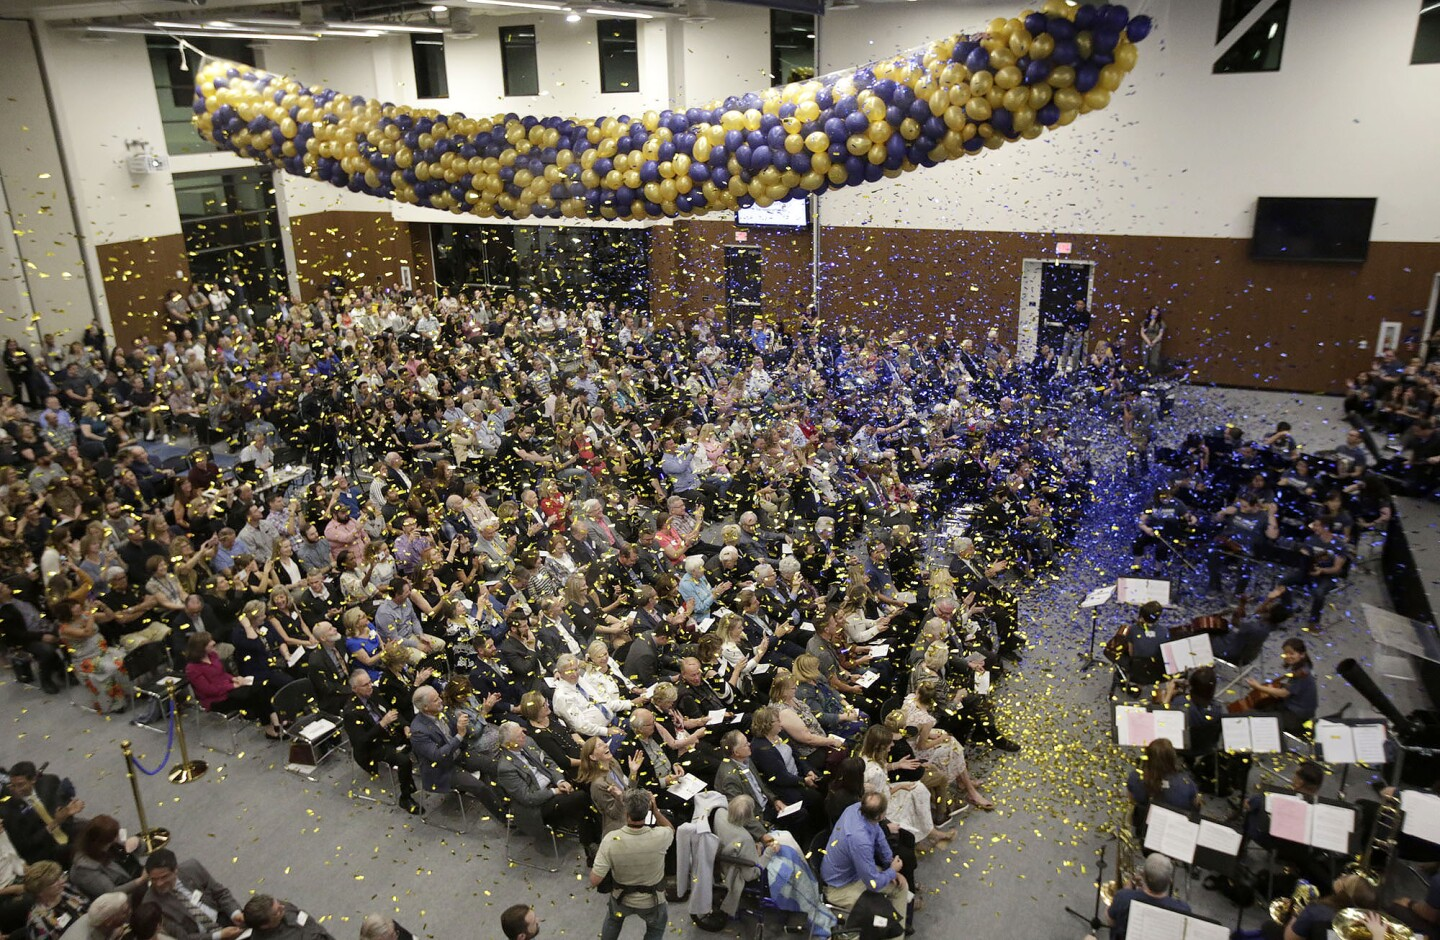 Over a thousand guests watch as confetti flies during 100 year anniversary and new Fred and Ruth Waugh Student Center unveiling ceremony at Vanguard University on Friday.